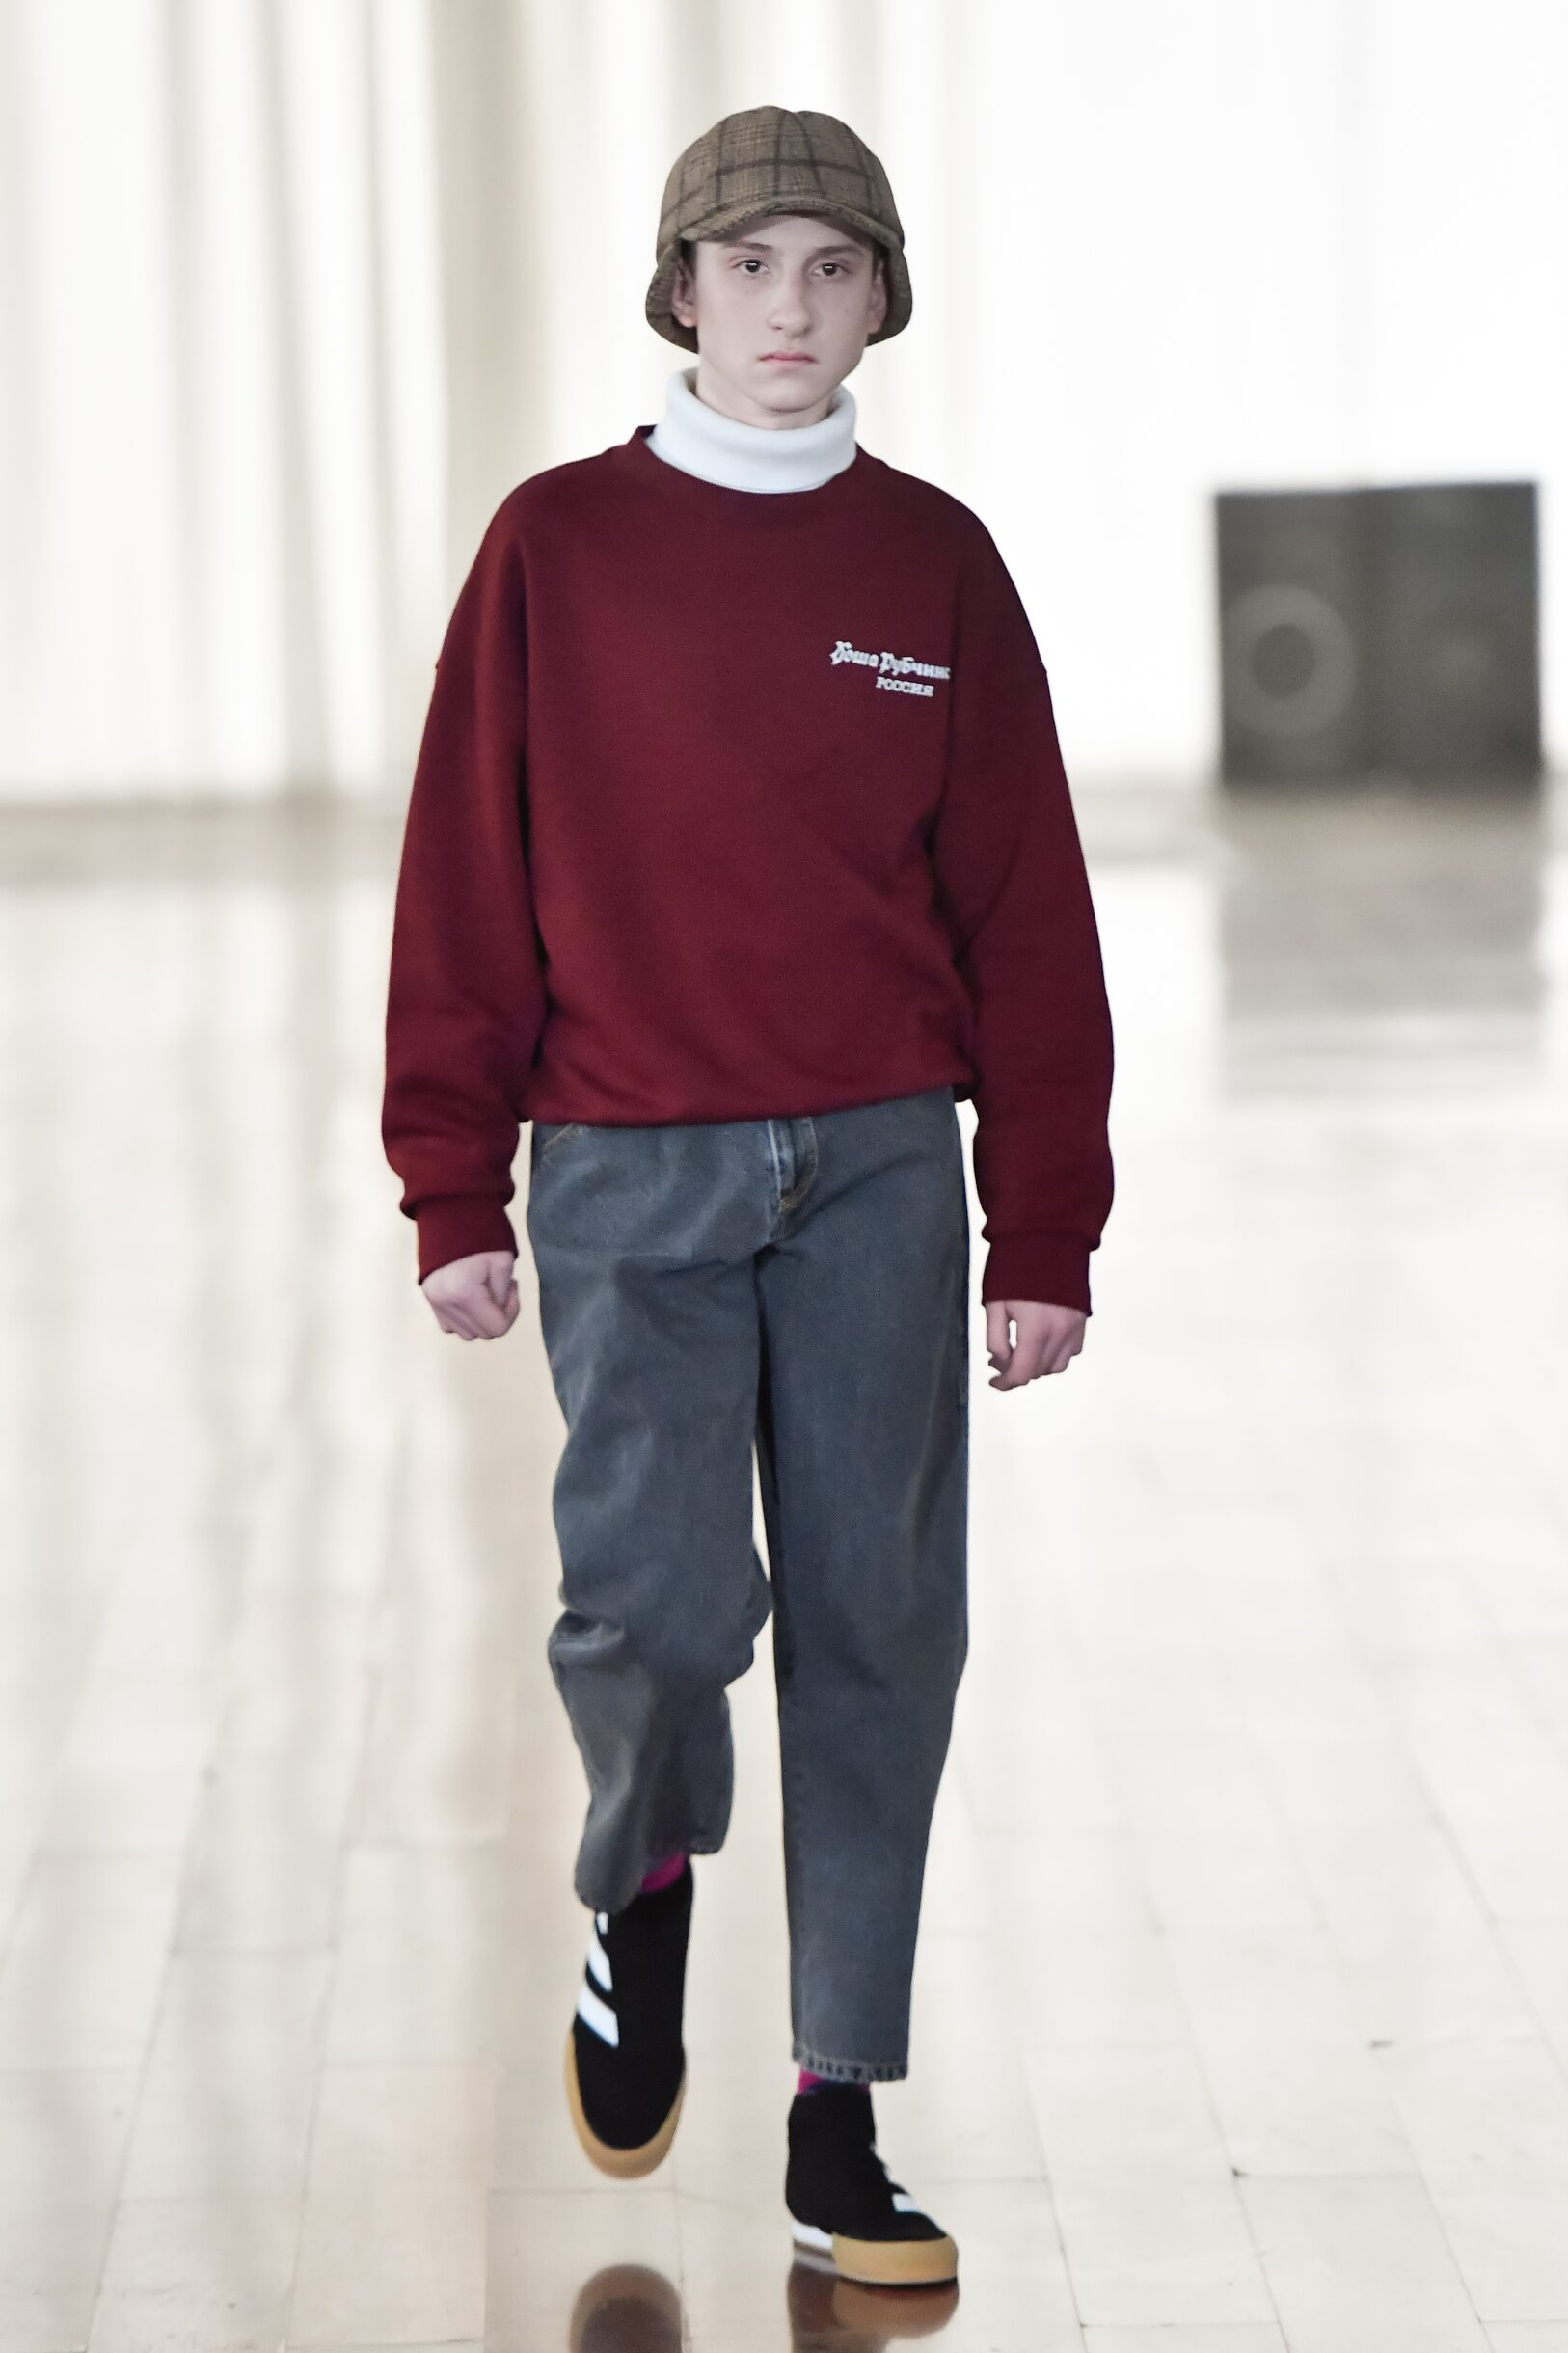 Runway Gosha Rubchinskiy Fall Winter 2017 Men's Collection Kaliningrad